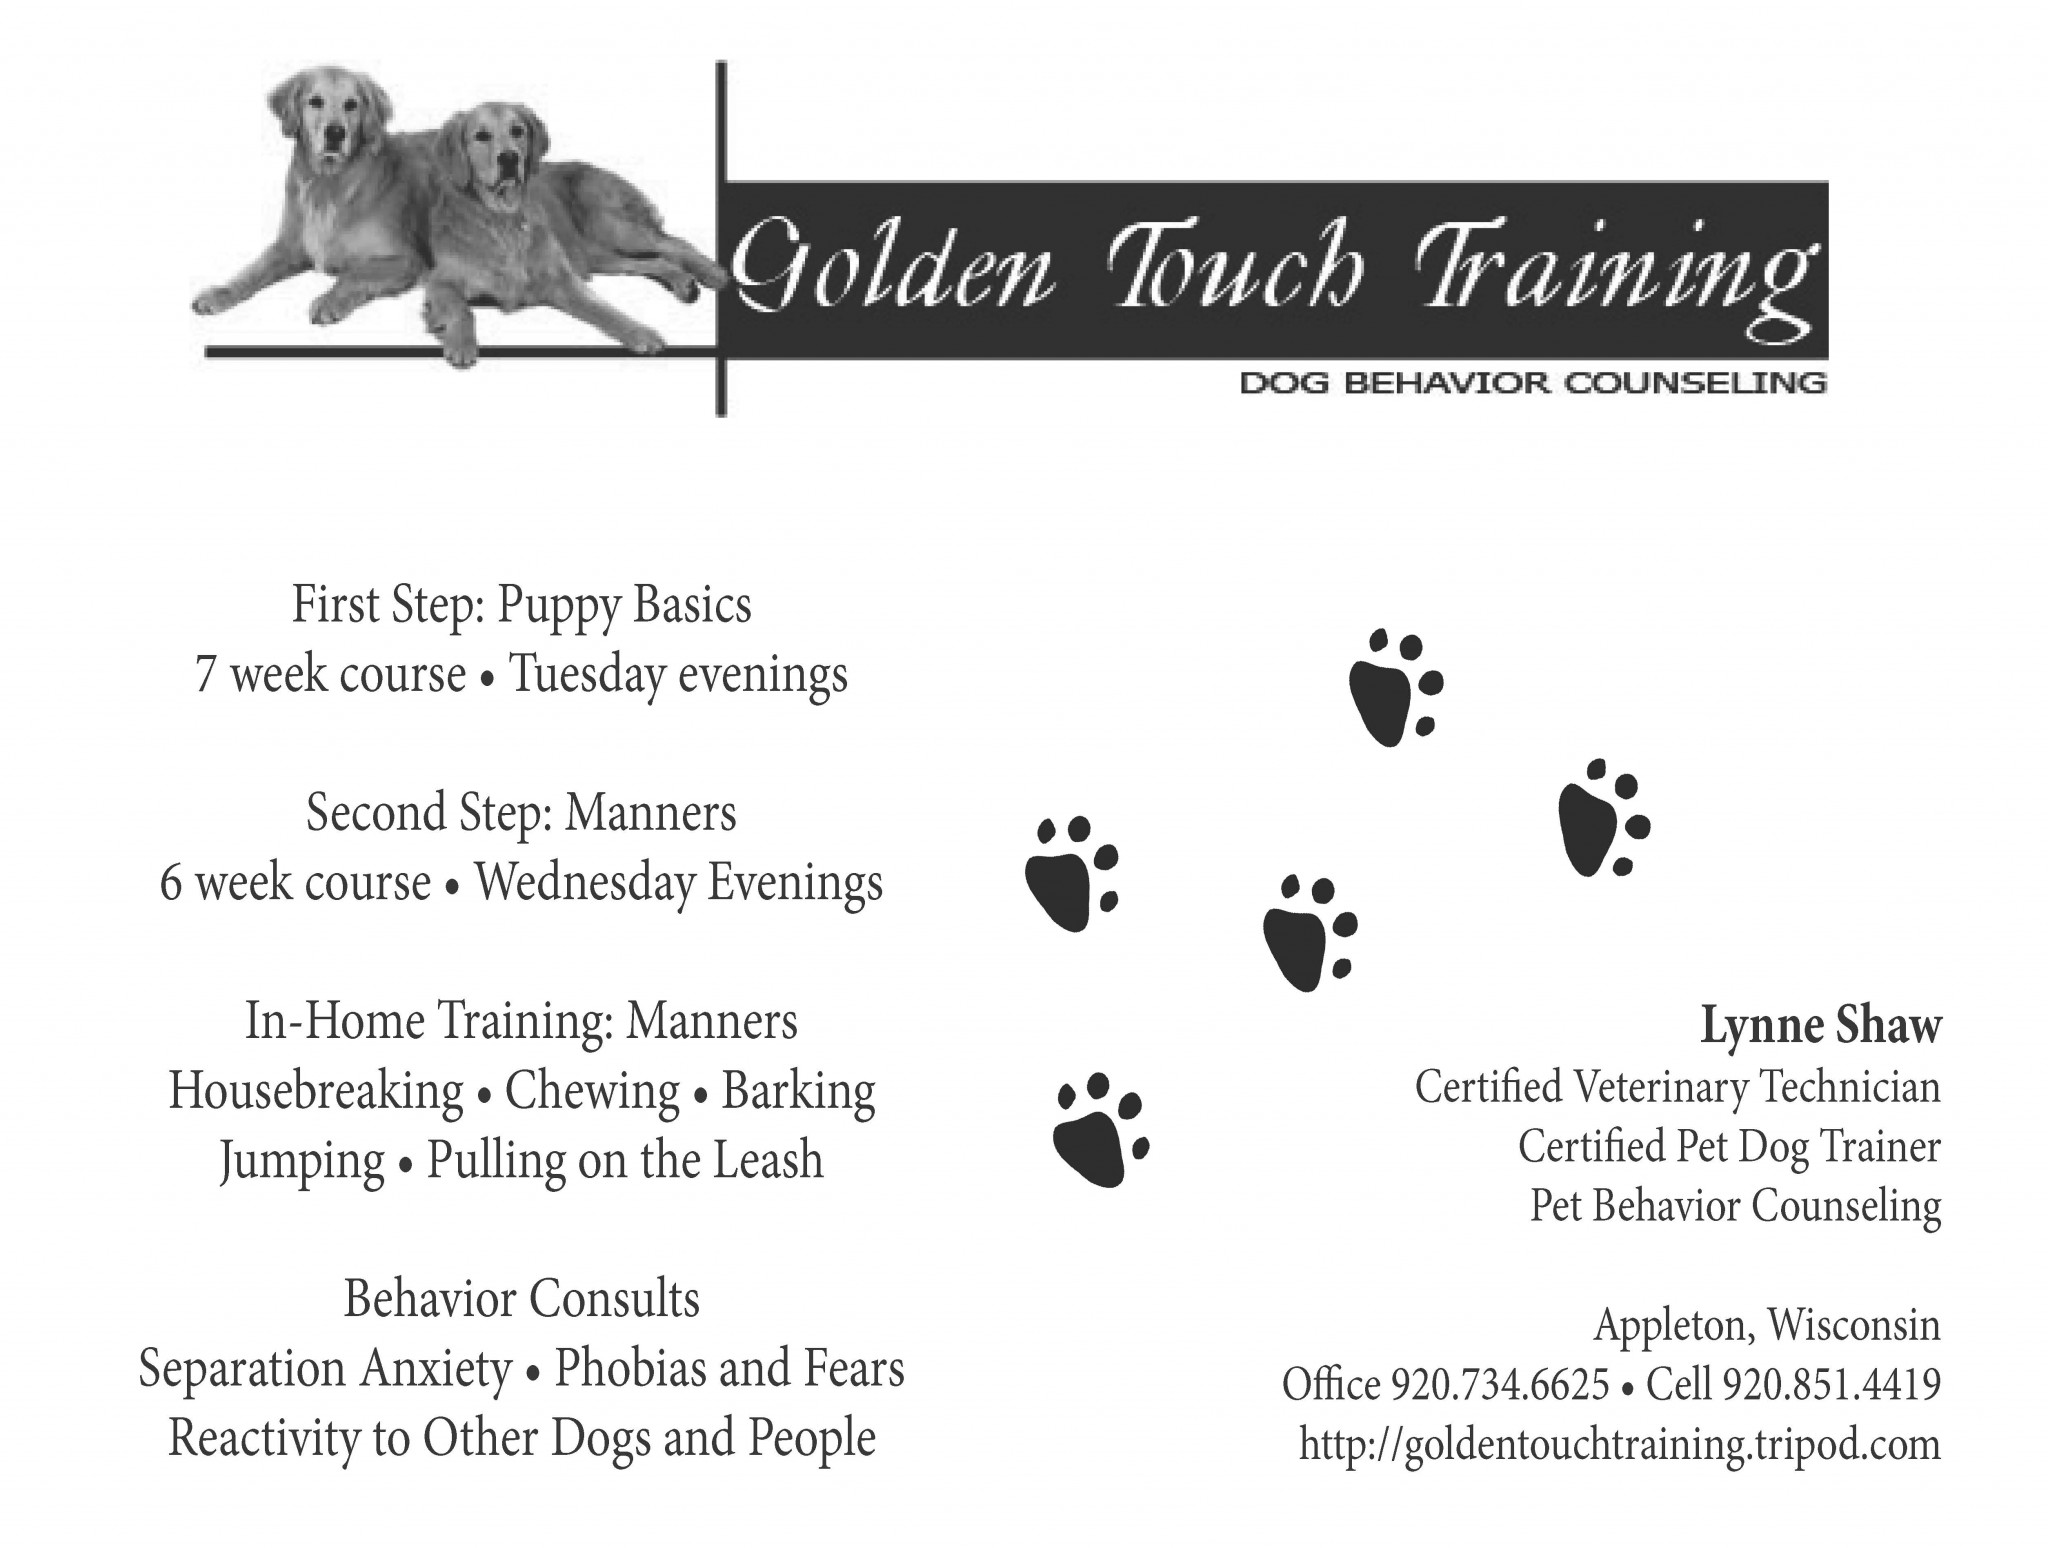 Golden Touch training